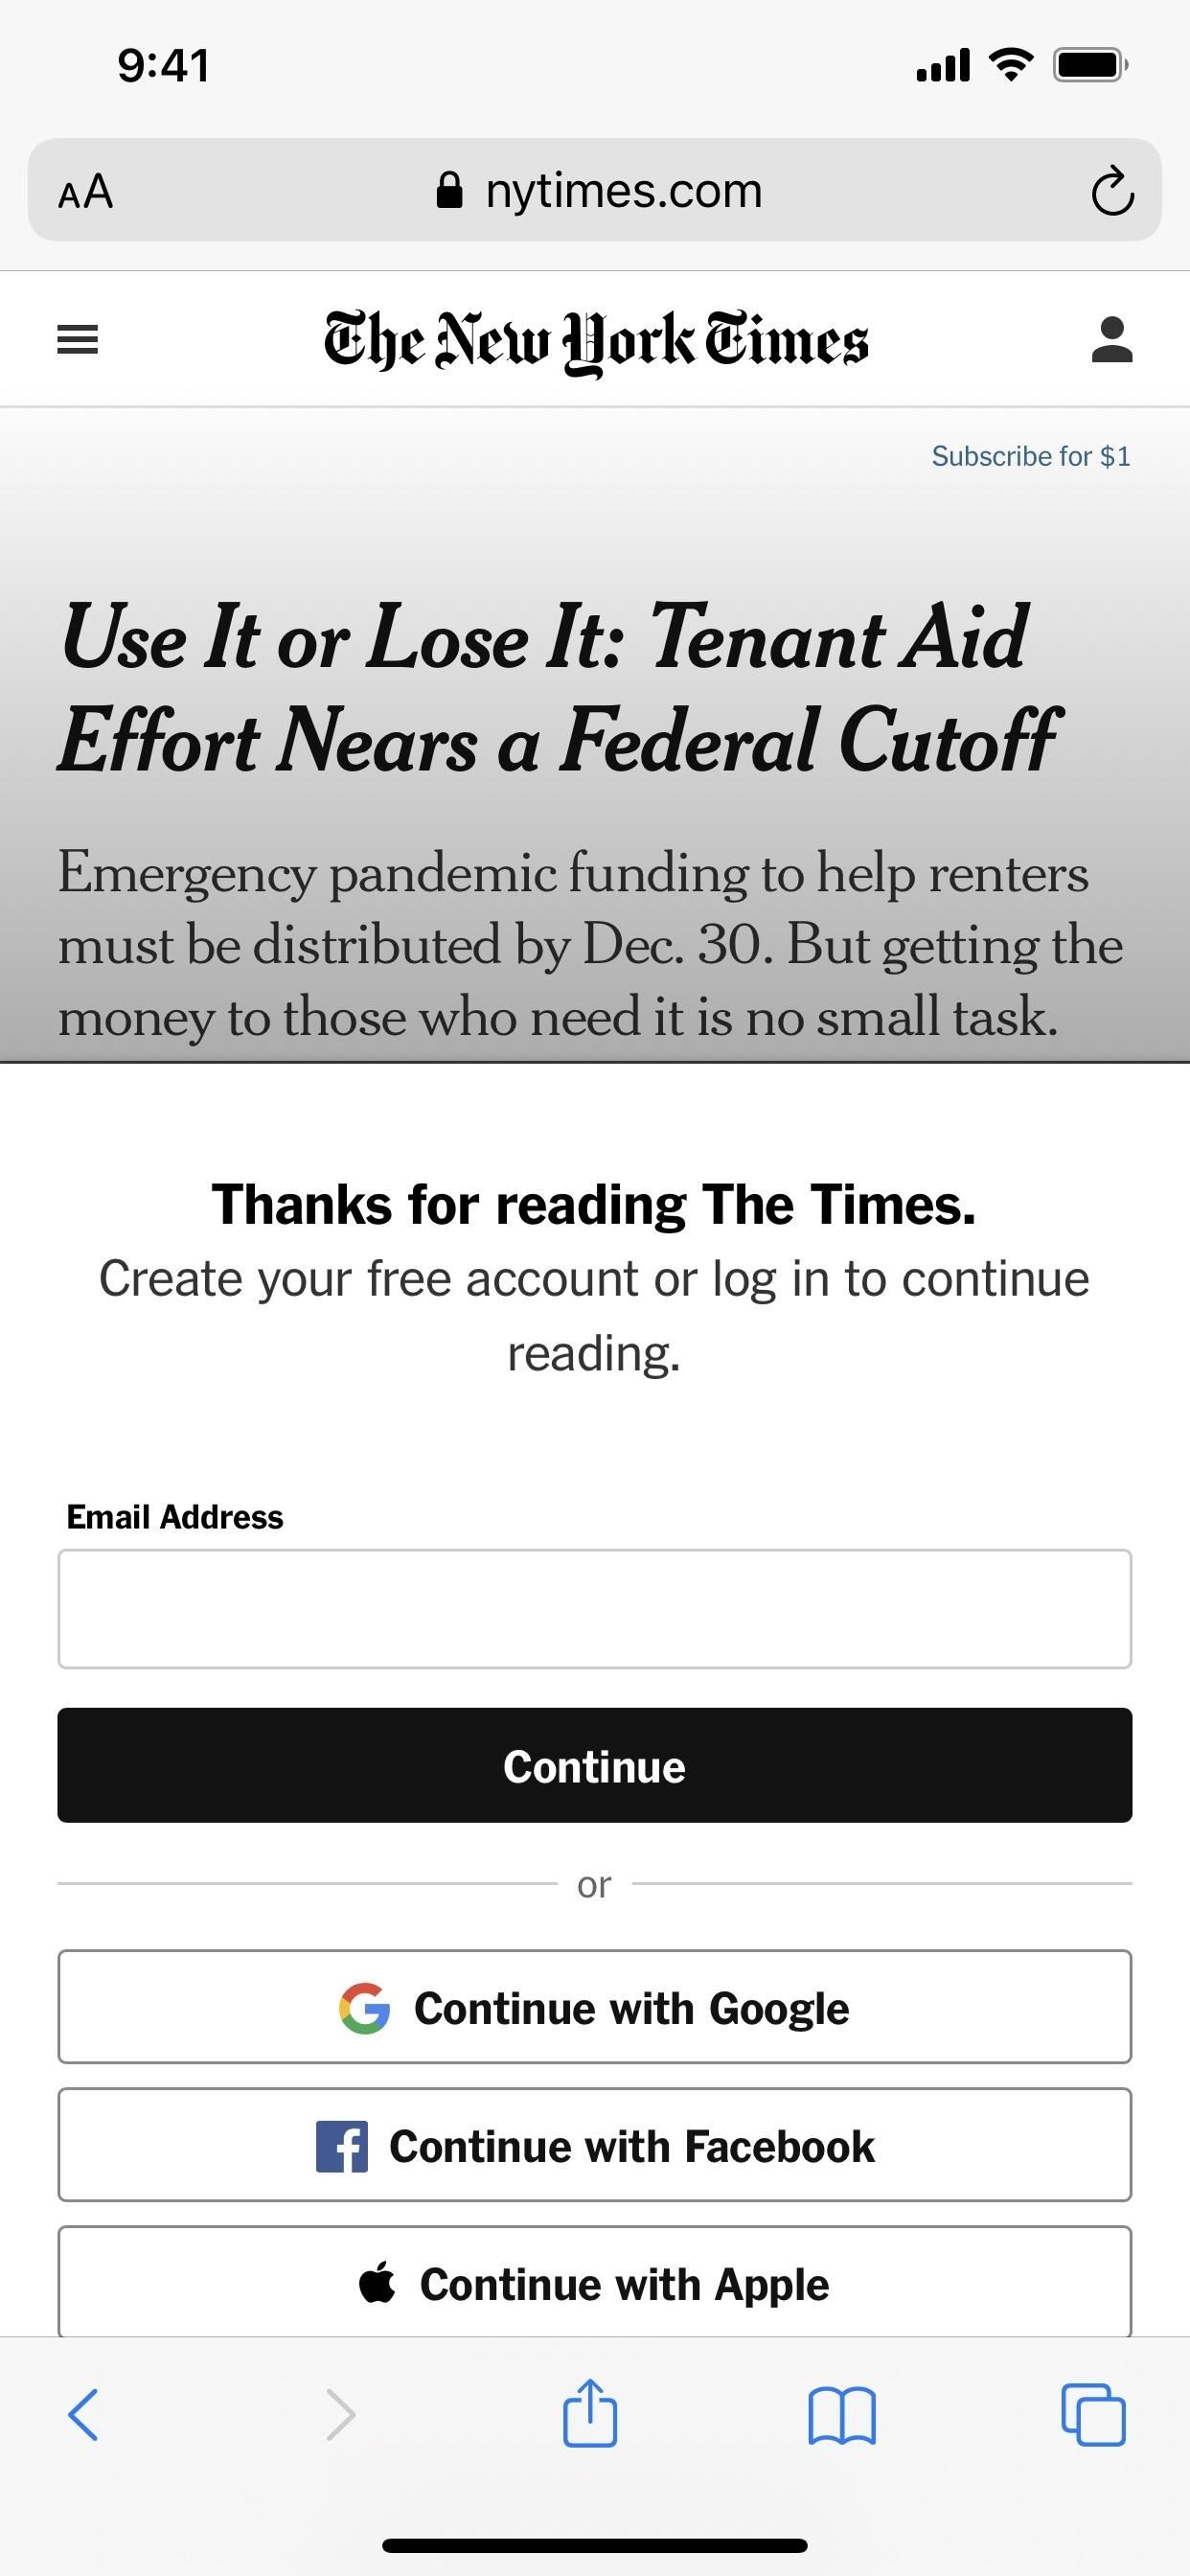 The Best Way to Bypass Website Paywalls & Unlock Full Articles on Your iPhone